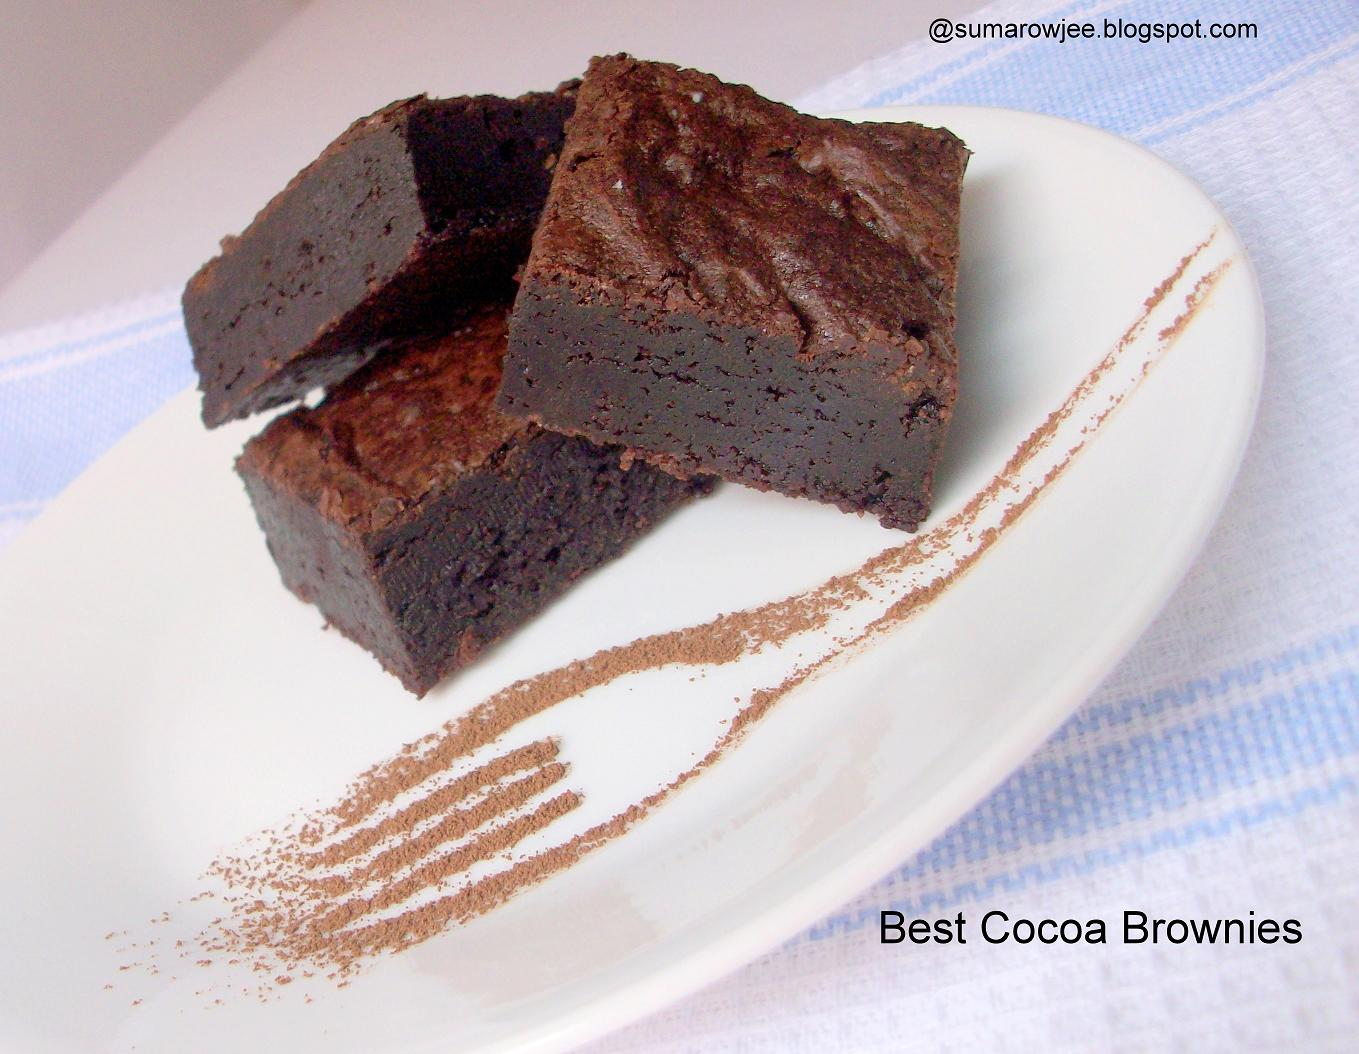 Cakes And More!: Best Cocoa Brownies